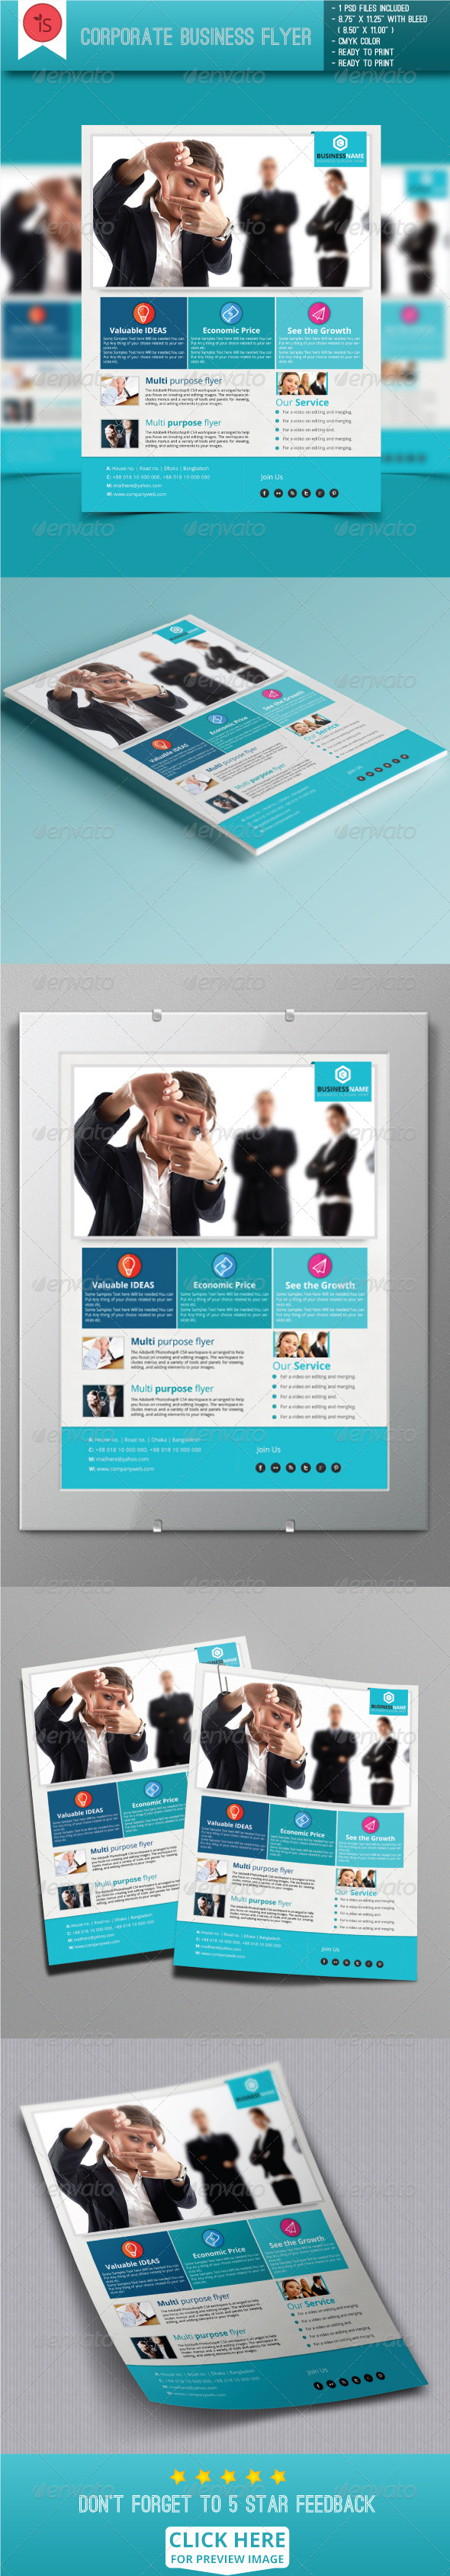 GraphicRiver Corporate Business Flyer 7795332